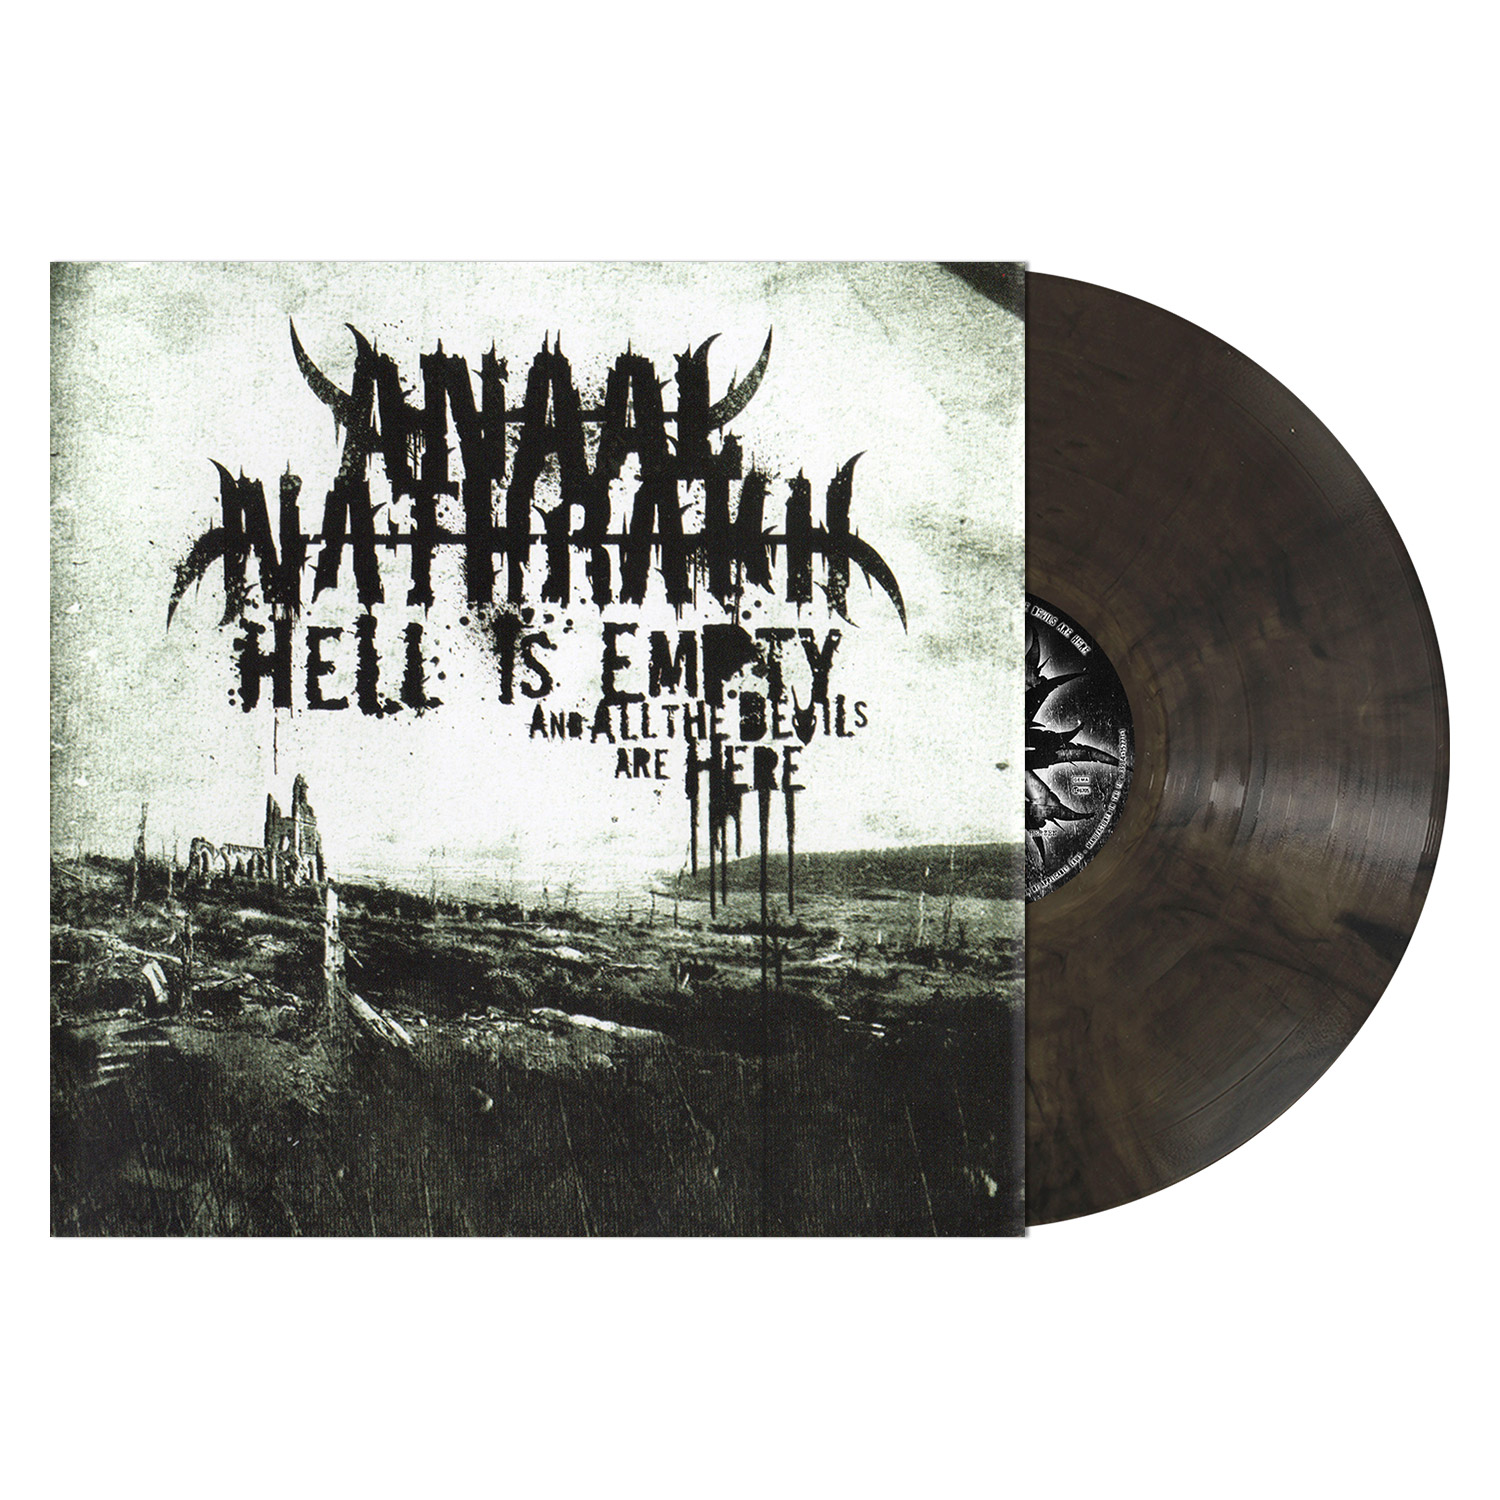 Hell Is Empty, and All the Devils Are Here (Warm Grey Marbled Vinyl)